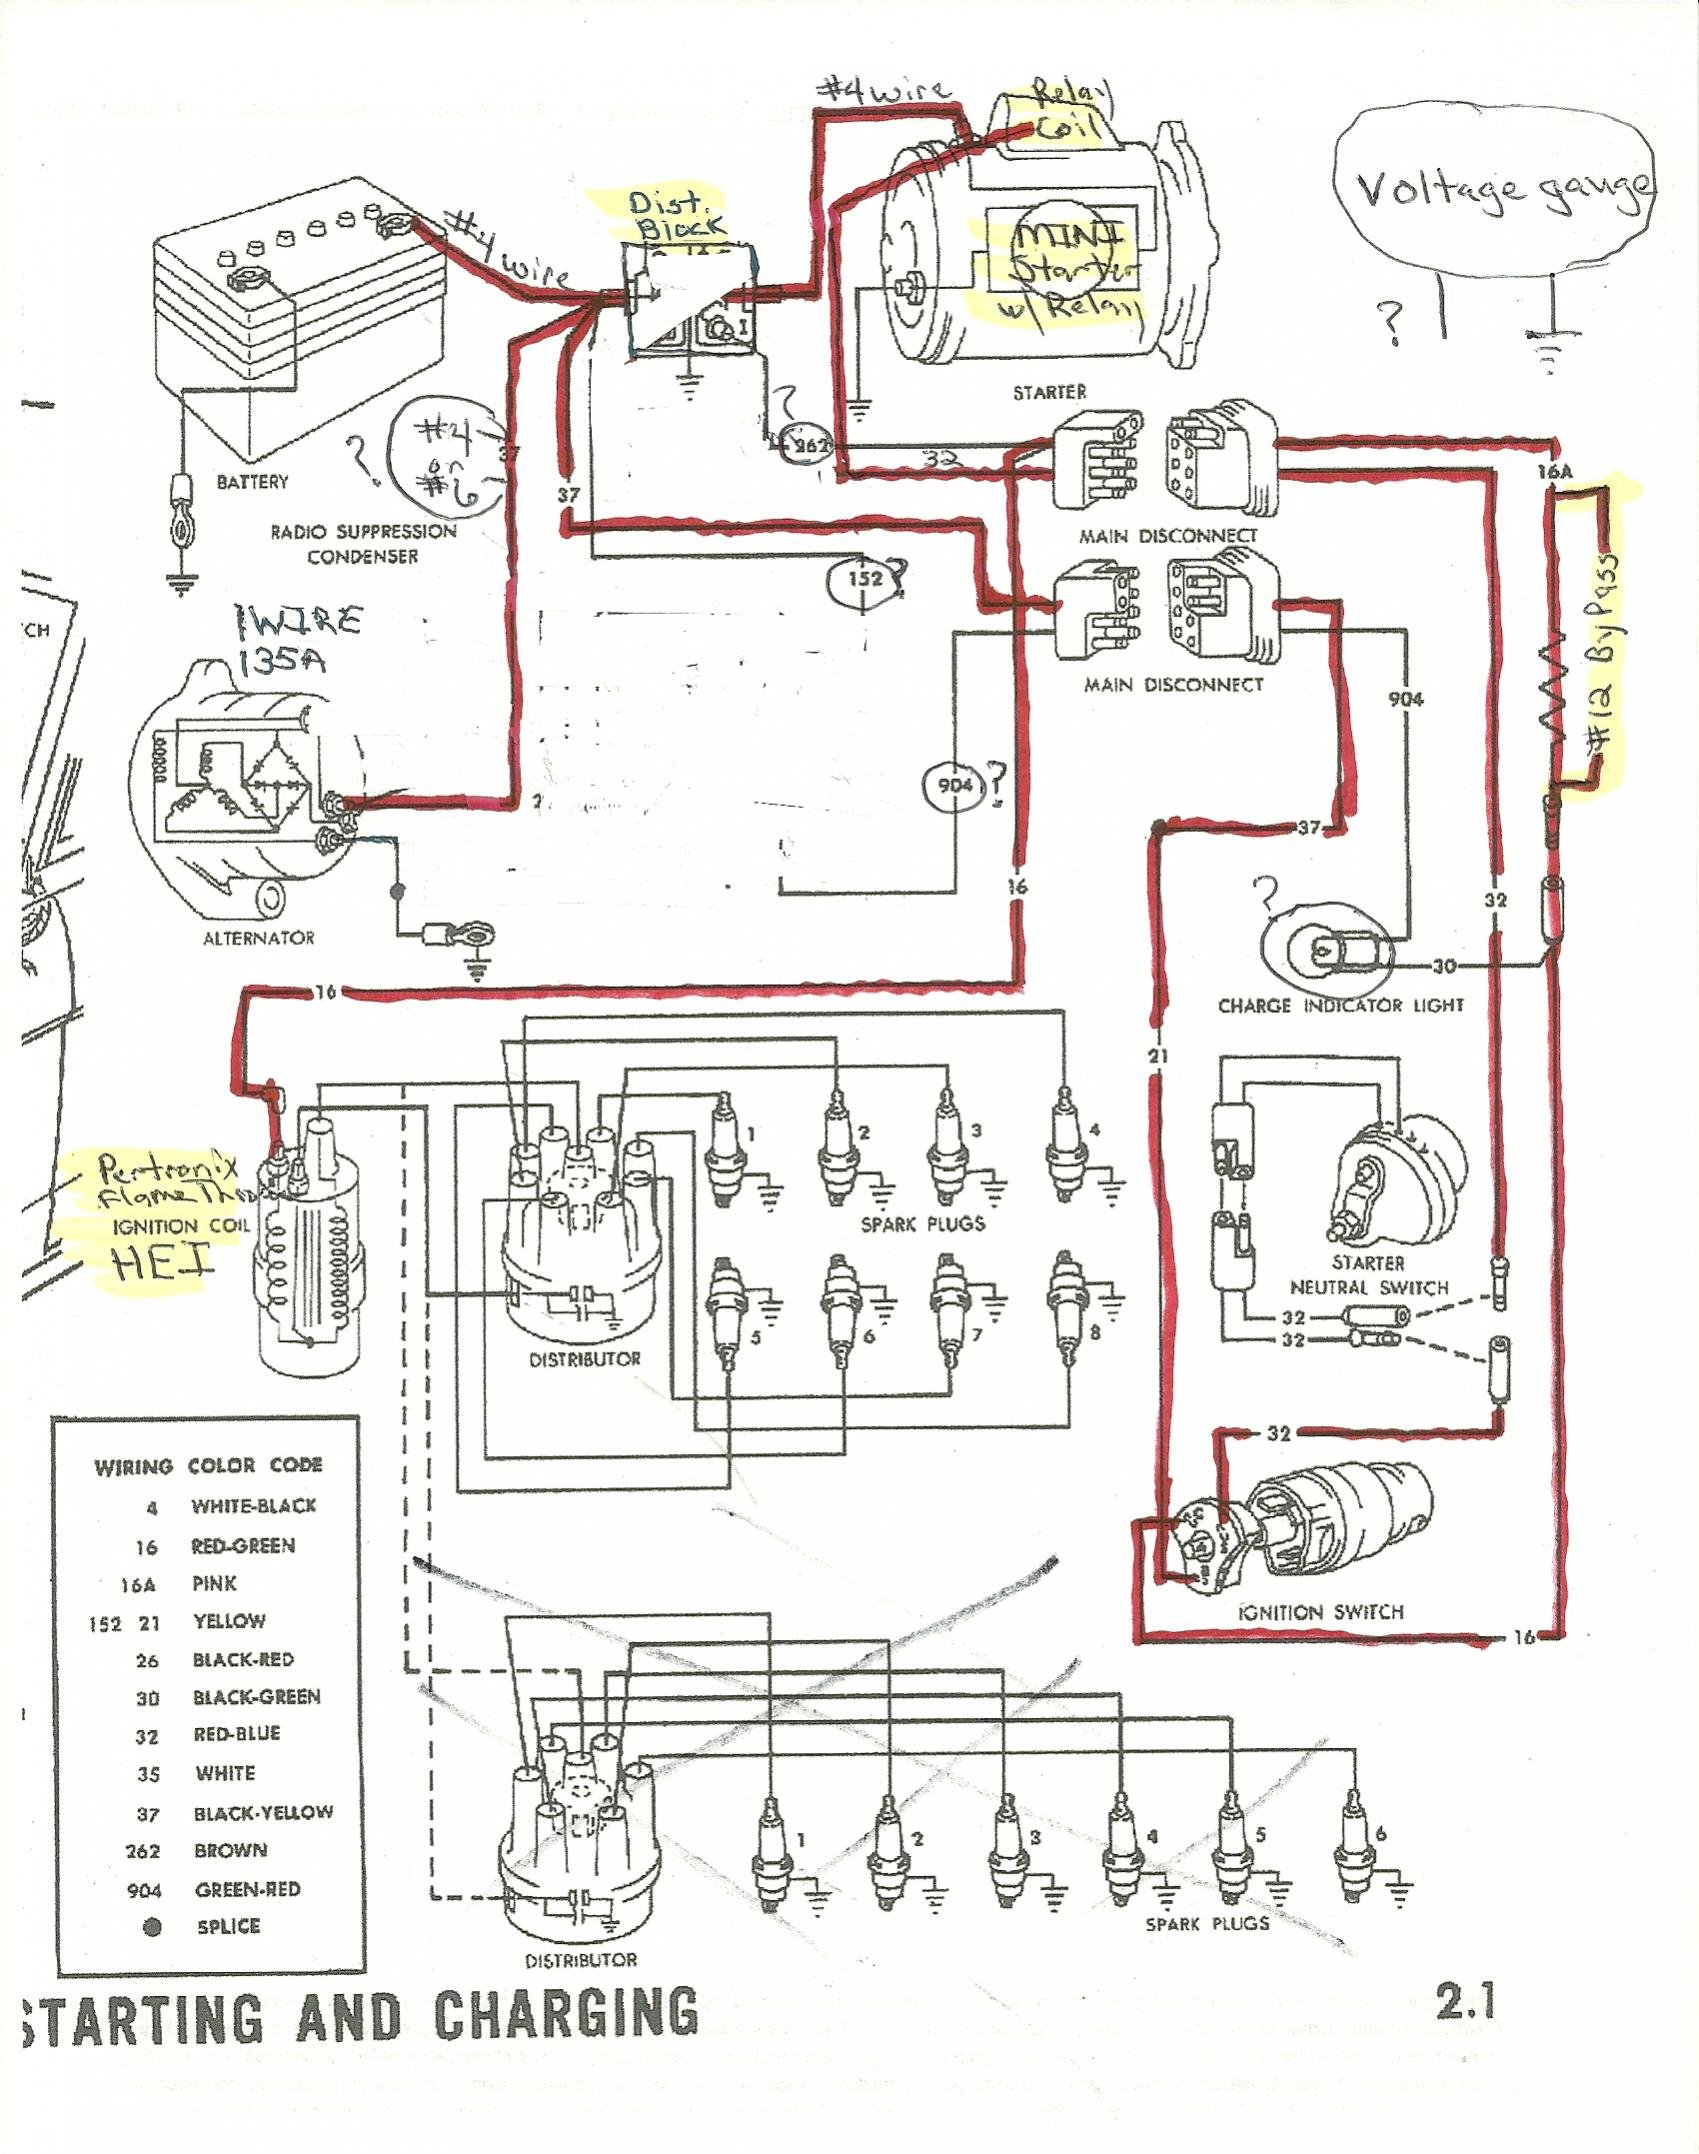 55 Inspirational Ford 460 Starter Wiring Diagram